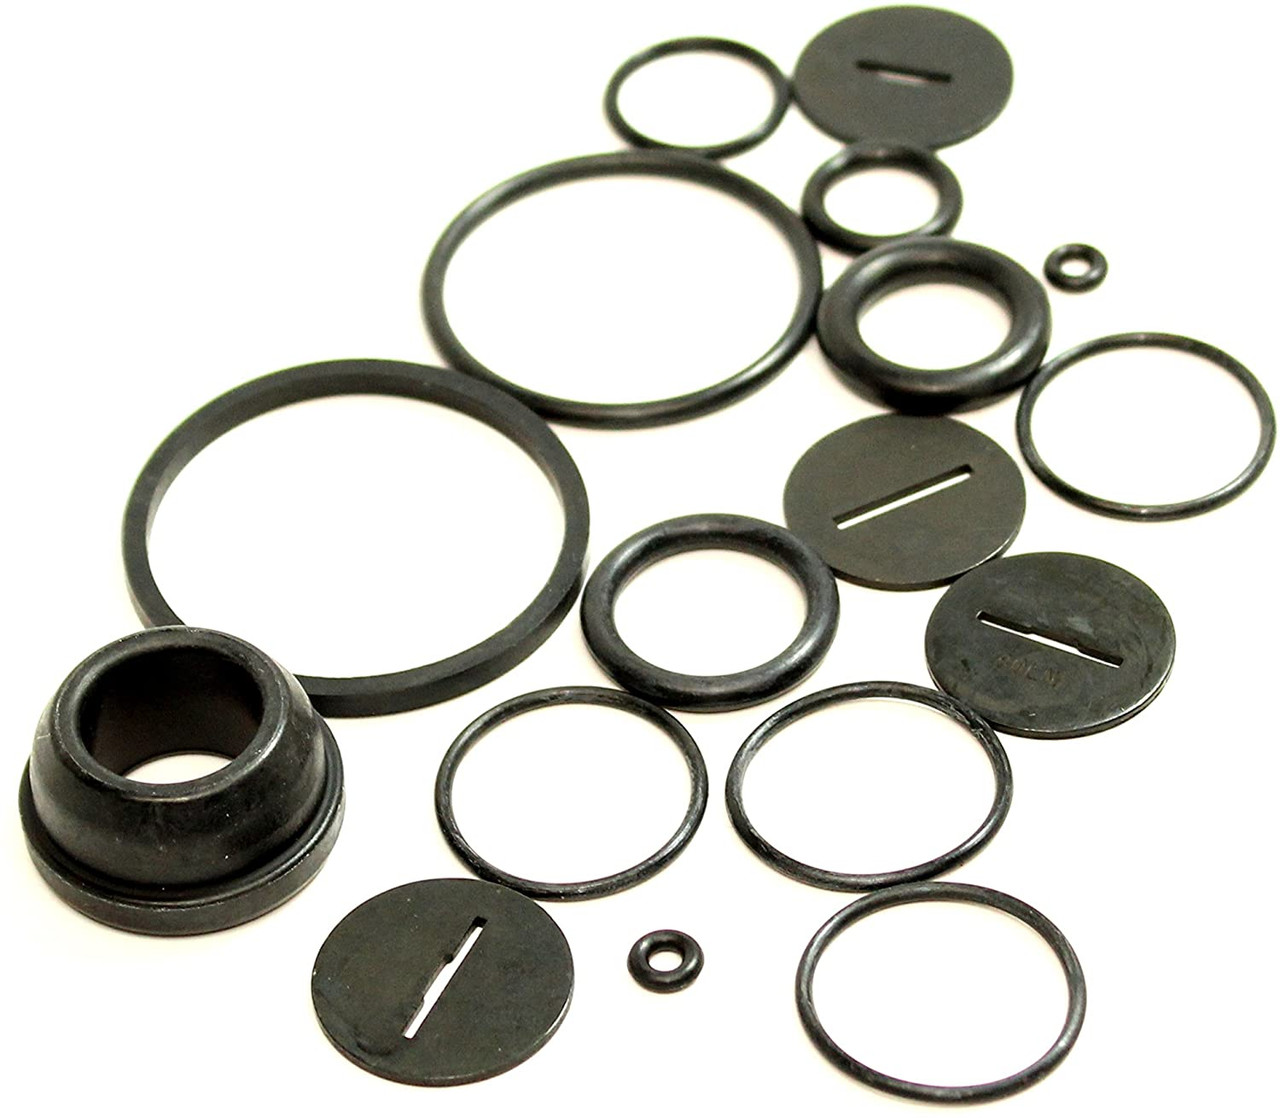 Senco SFW09 O-Ring Repair Kit - YK0775